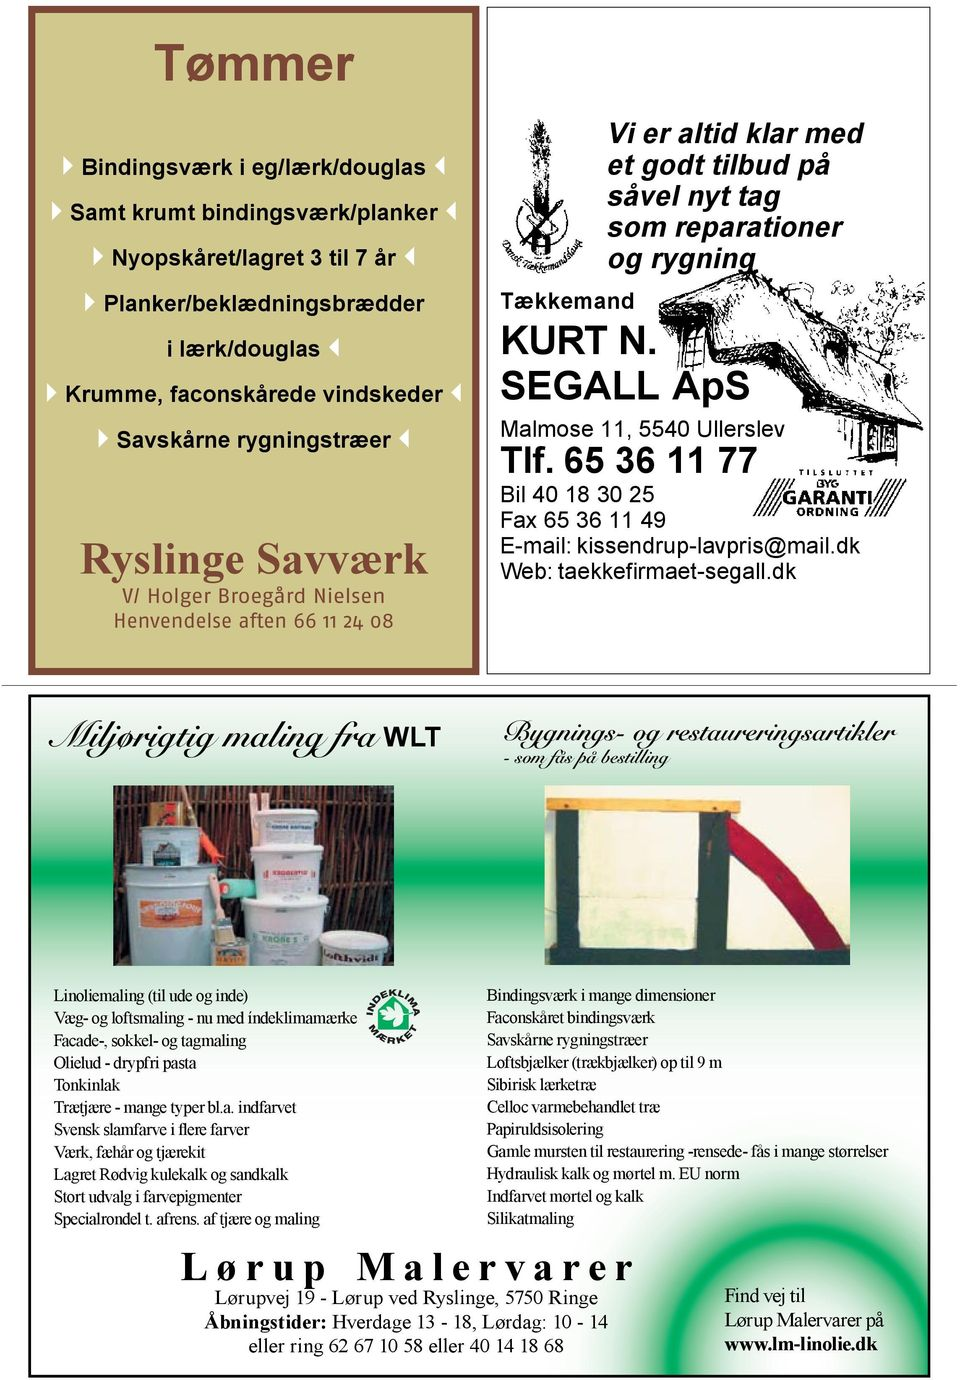 SEGALL ApS Malmose 11, 5540 Ullerslev Tlf. 65 36 11 77 Bil 40 18 30 25 Fax 65 36 11 49 E-mail: kissendrup-lavpris@mail.dk Web: taekkefirmaet-segall.